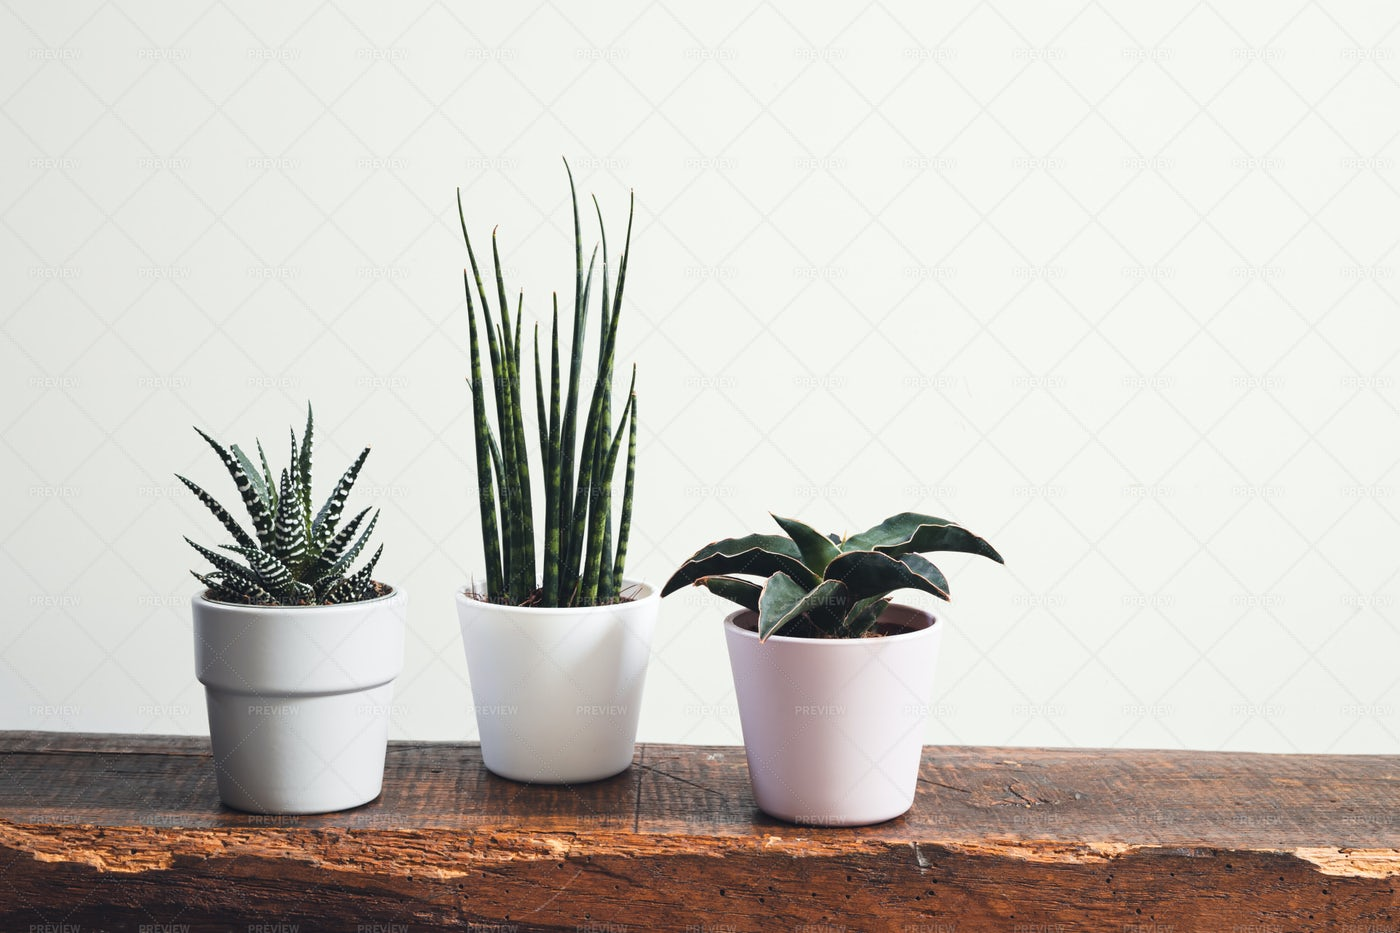 Home Plants In Pots: Stock Photos